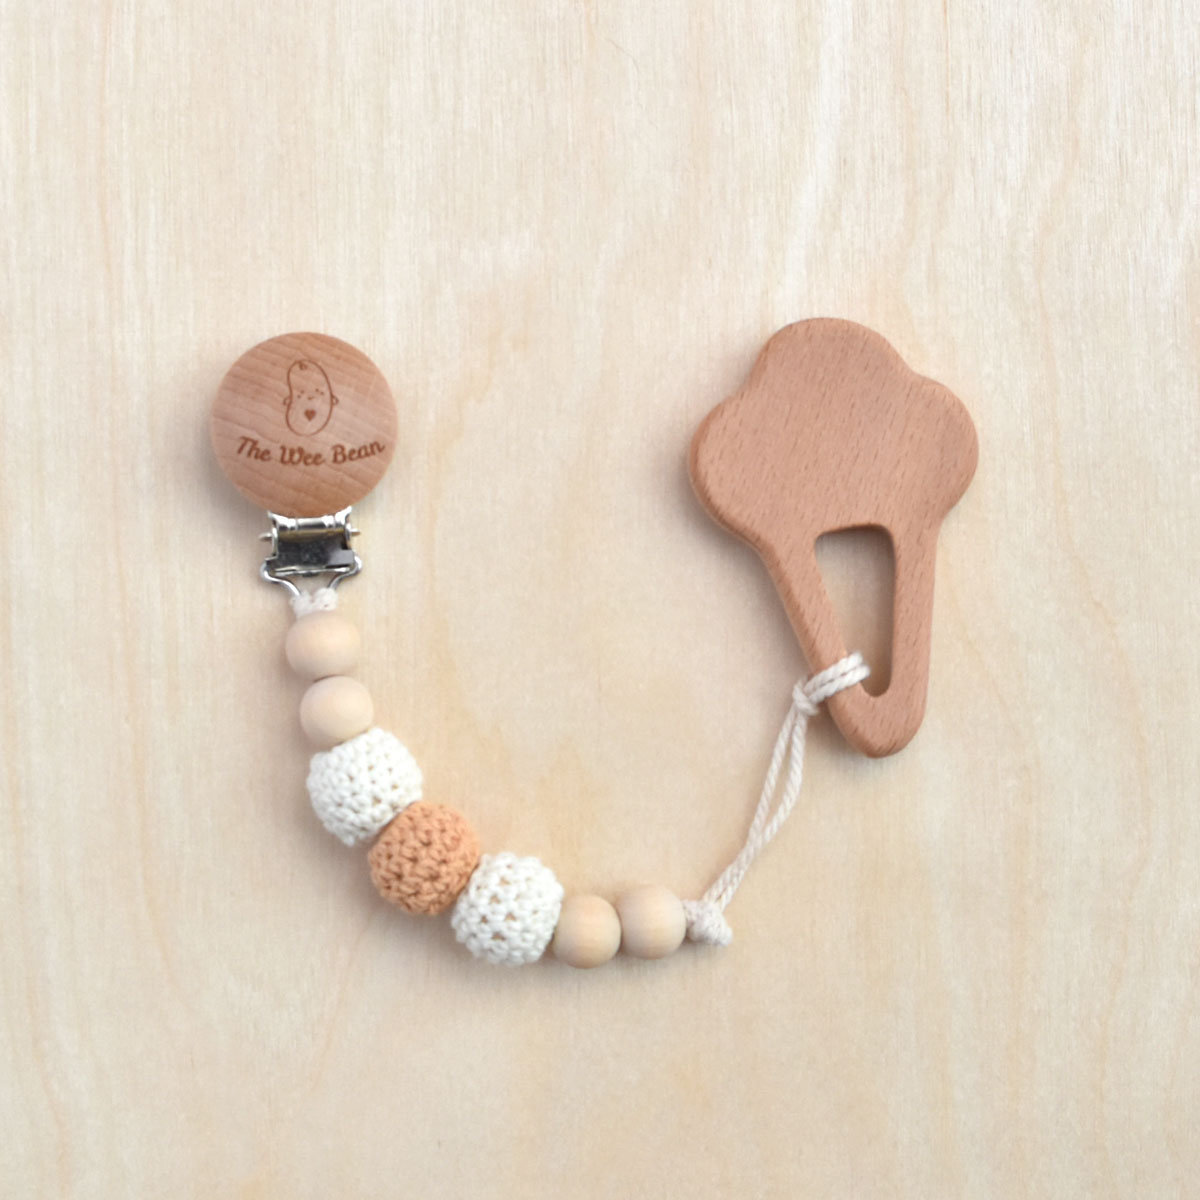 Ice Cream Organic Wood Teether + Pacifier Clip Set (Neutral Brown Color)